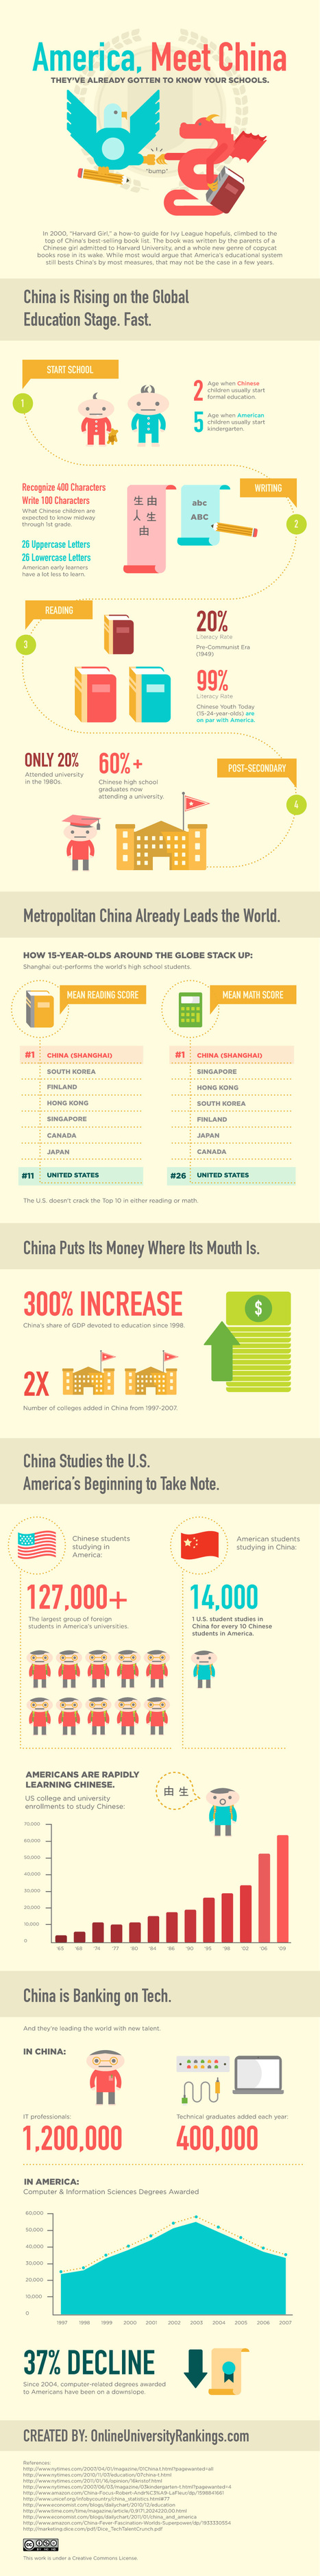 Infographic: China vs. America in Education | Economy Watch | EPIC Infographic | Scoop.it